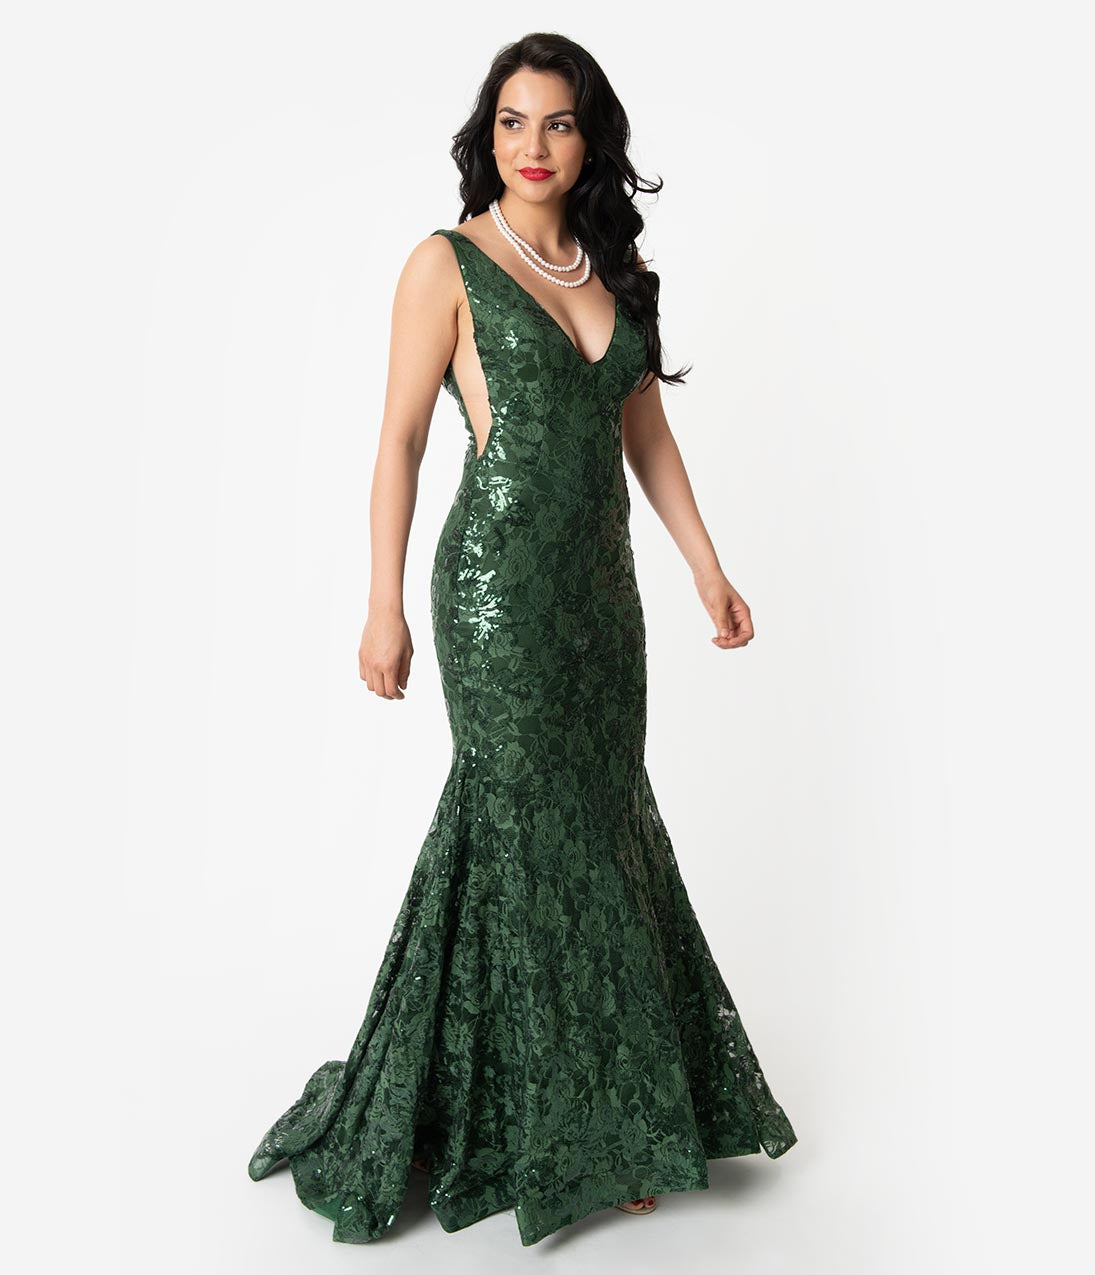 1950s Dresses, 50s Dresses | 1950s Style Dresses Hunter Green Sequin Lace Sexy Mermaid Gown $220.00 AT vintagedancer.com